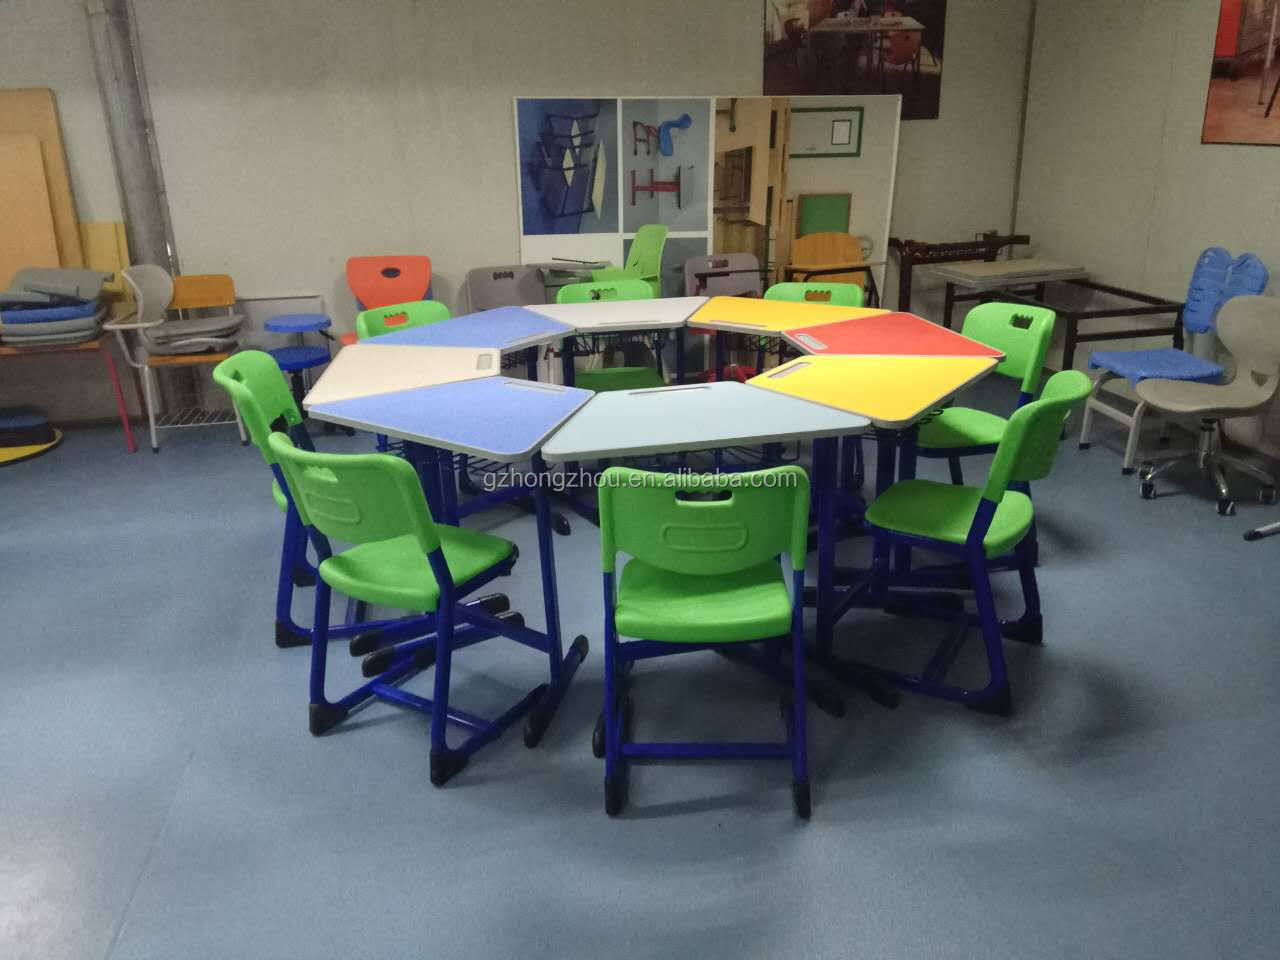 Collaborative smart classroom furniture student chair and table